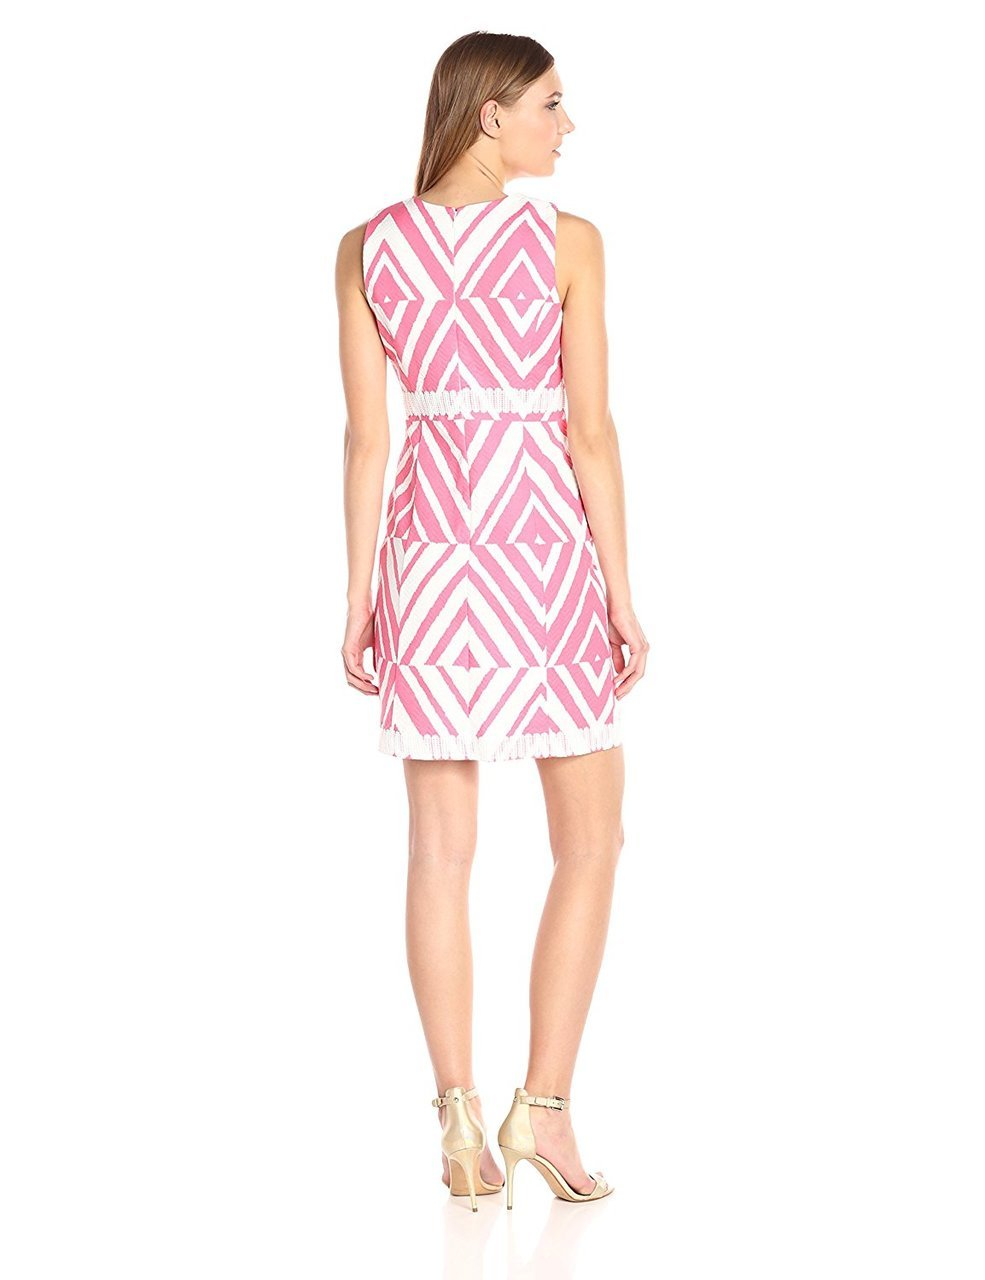 Taylor - Embellished Printed Sheath Dress 8773M in Pink and White